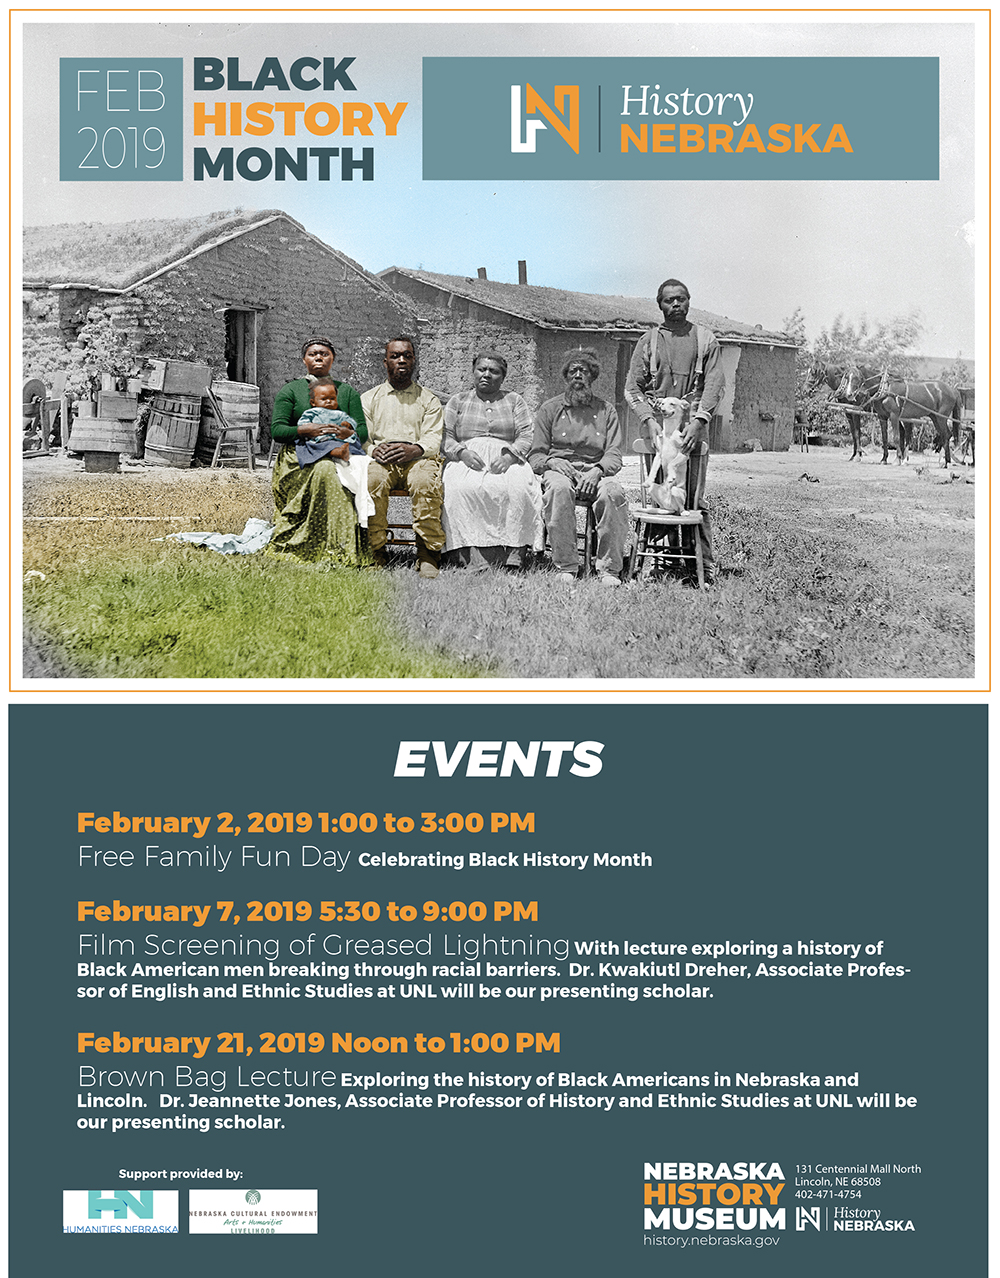 Black History Month at the Nebraska History Museum